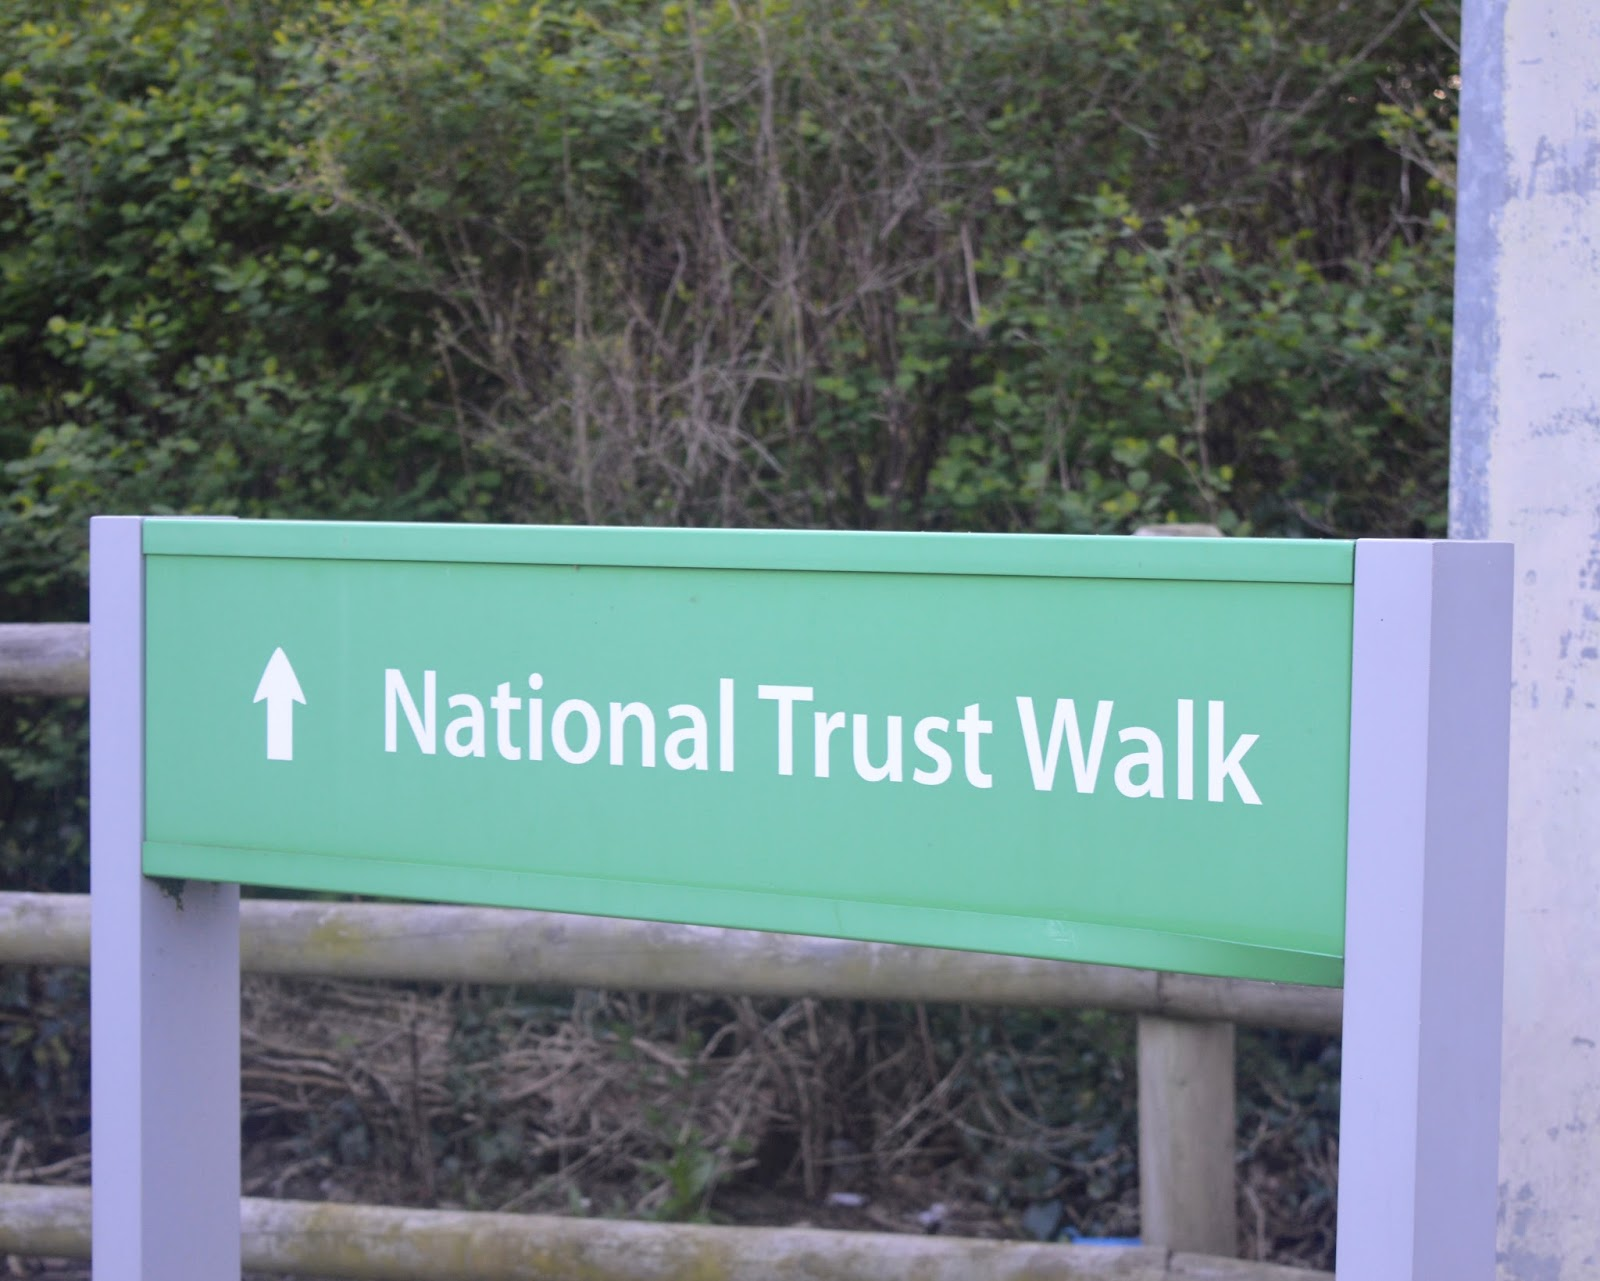 Book Cheap Airport Parking & Hotels with Skyparksecure | Airport Inn Manchester Review - national trust walk